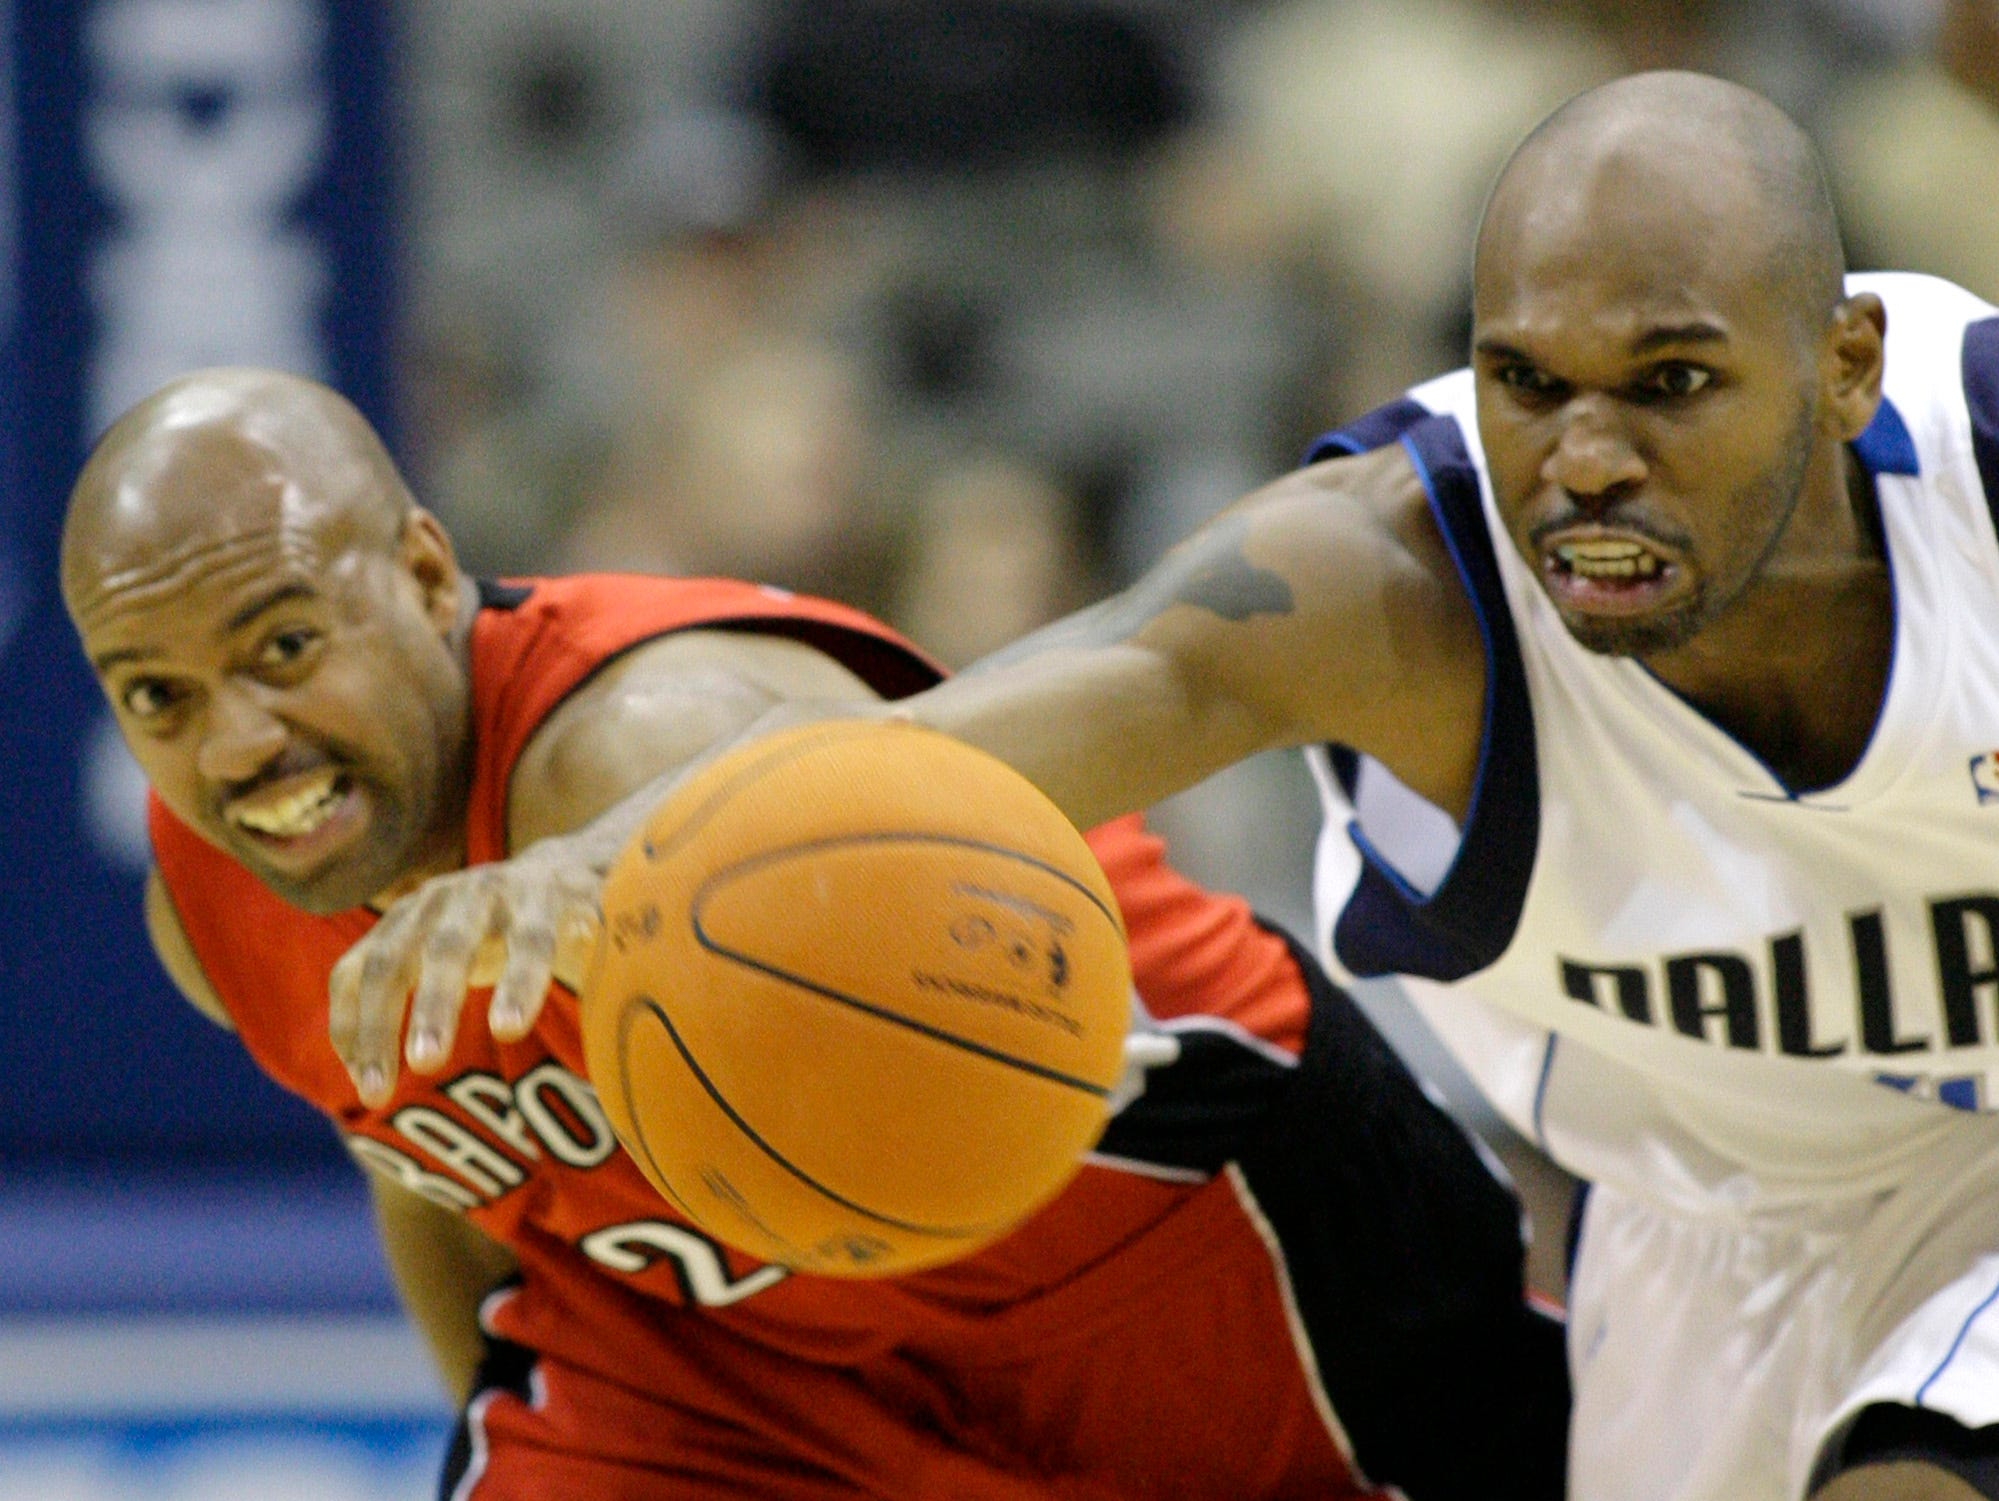 Dallas Mavericks guard Jerry Stackhouse, right, and Toronto Raptors guard Darrick Martin reach for a loose ball during the second half of an NBA basketball game Wednesday, Nov. 29, 2006, in Dallas. Dallas won 117-98.